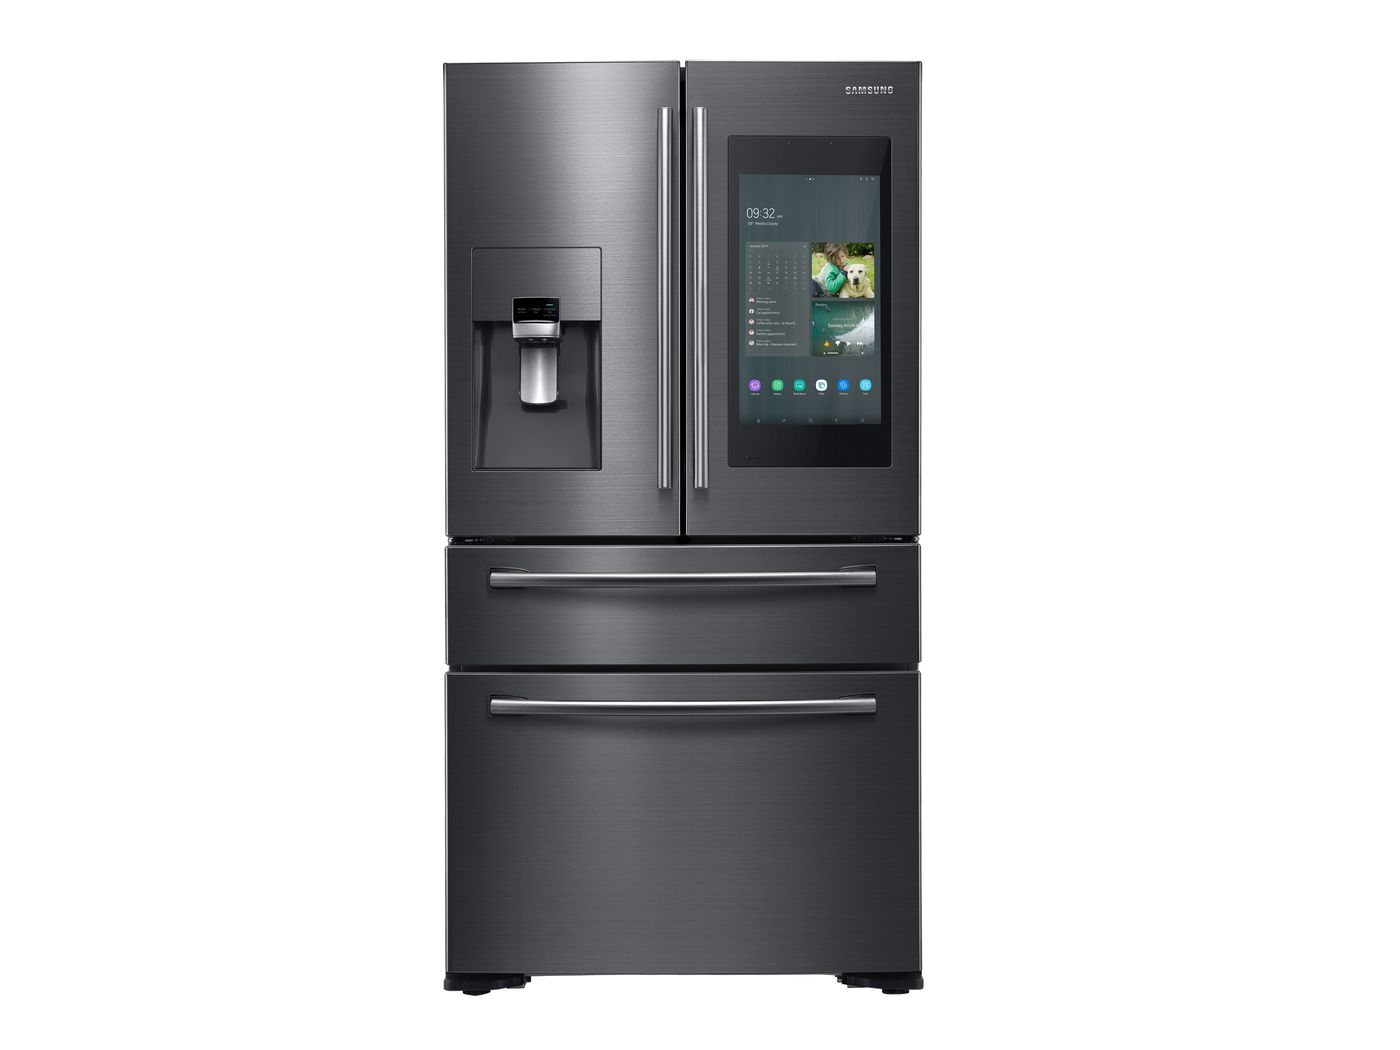 Samsung S New Fridge Will Ping Your Phone If You Leave The Door Open The Verge